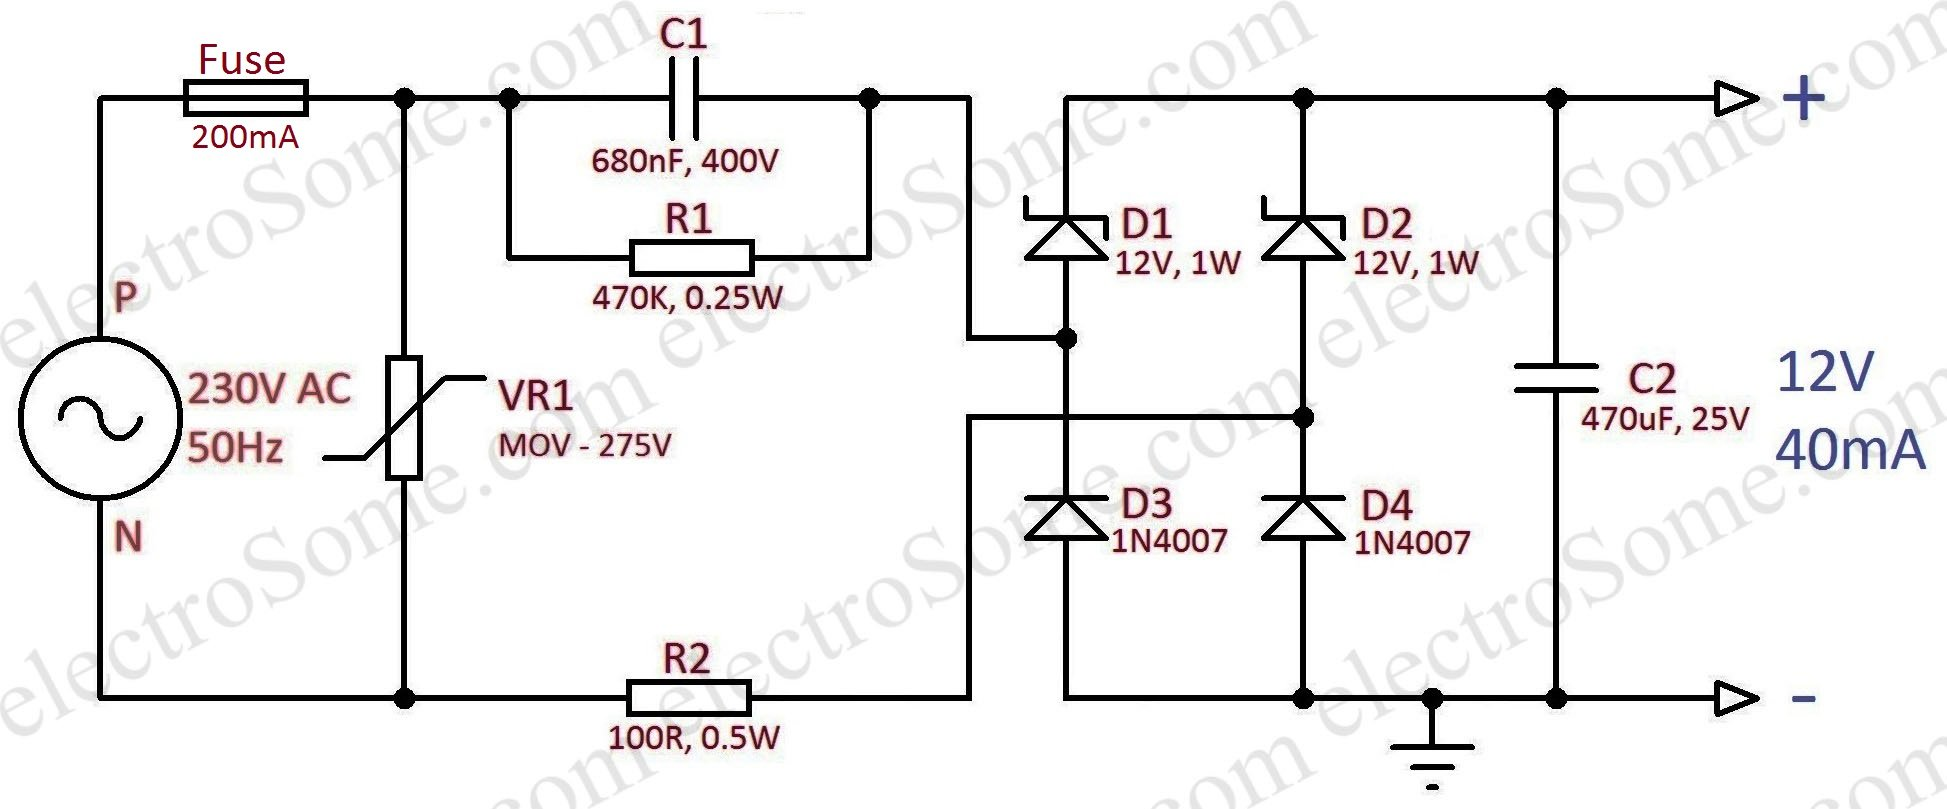 Automatic Night Lamp Using Ldr Flickering Led Amplifier Circuit Transformerless Capacitor Power Supply 12v 40ma